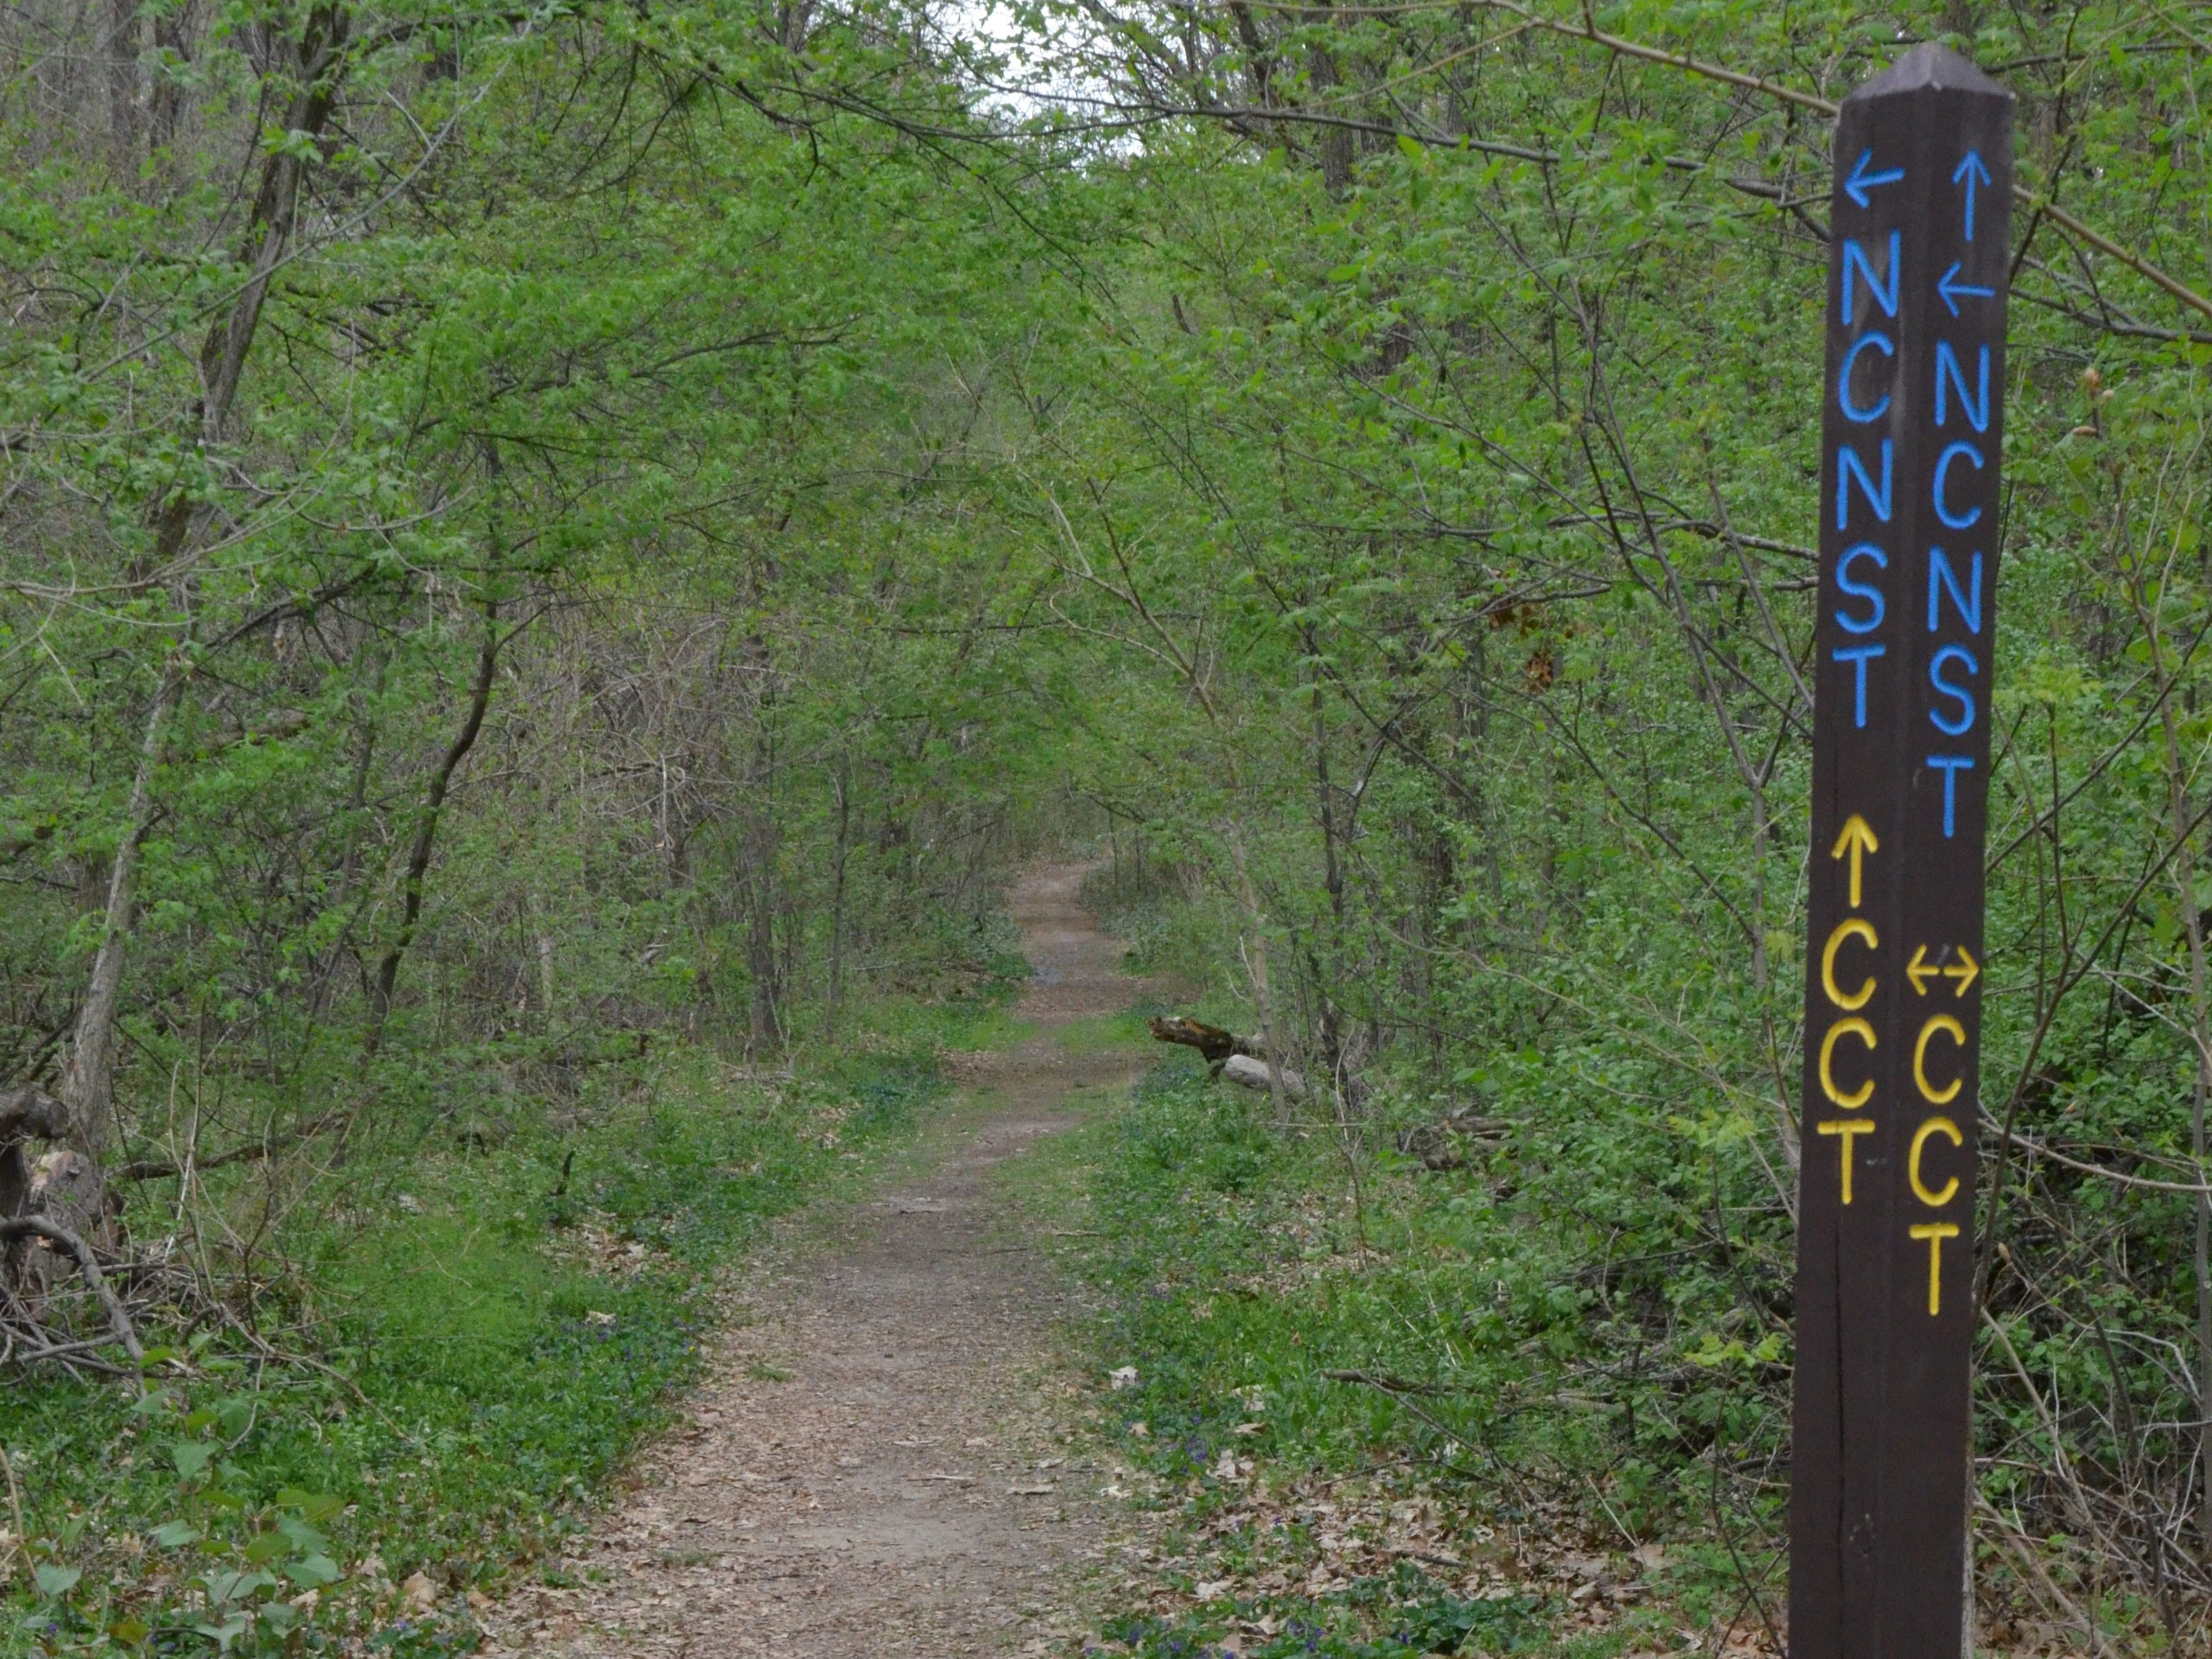 Calhoun County will be a crossroads in a trail network stretching thousands of miles